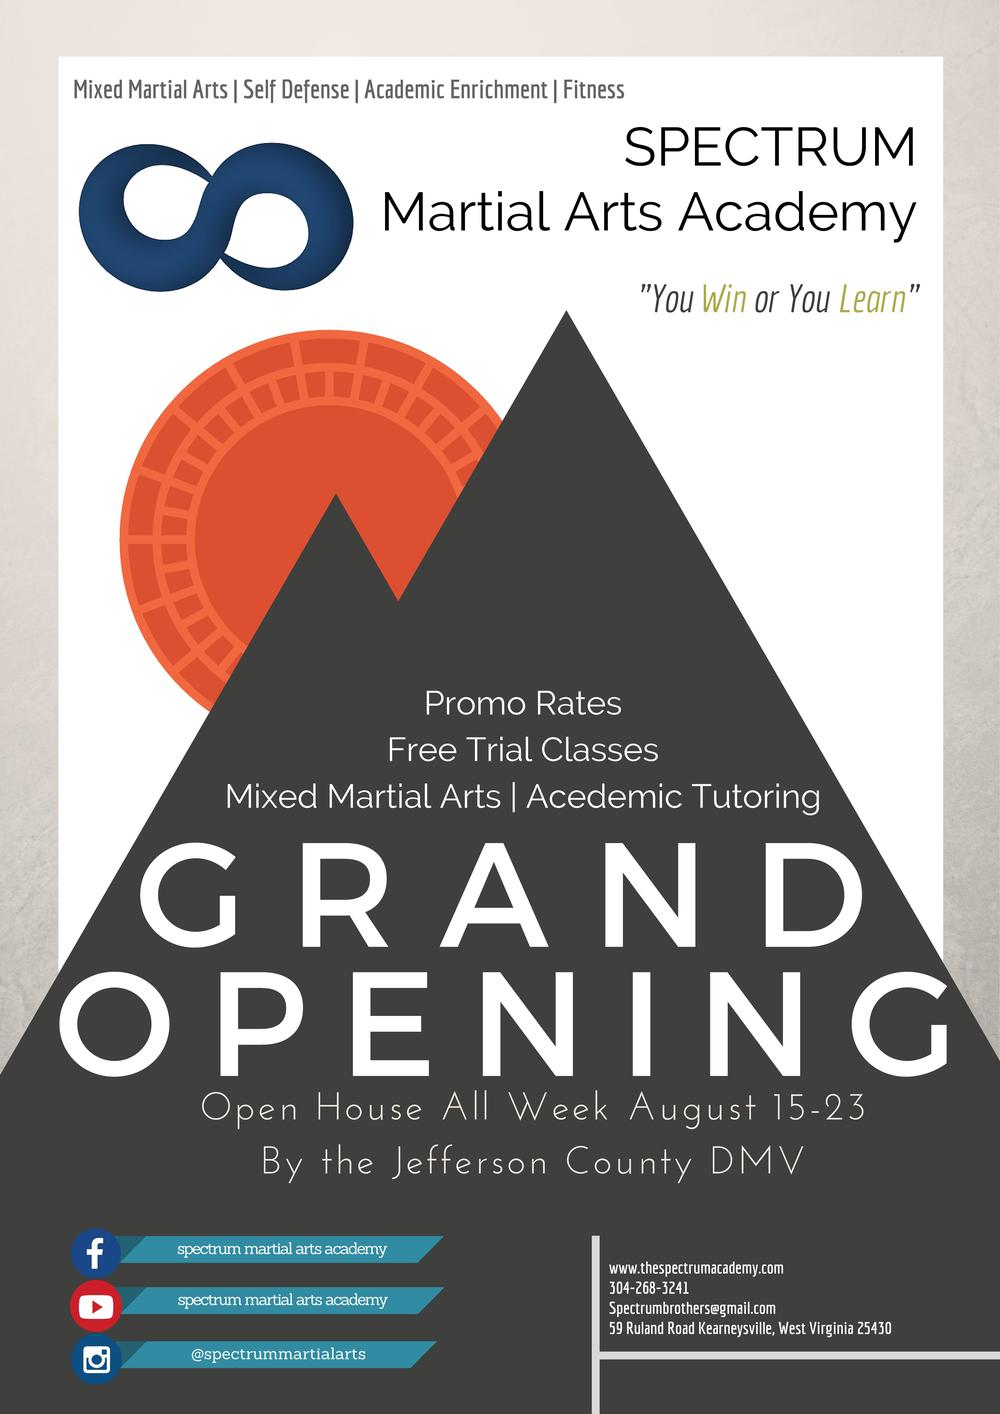 Grand Opening Flyer and Achievement System Poster Spectrum – Grand Opening Flyer